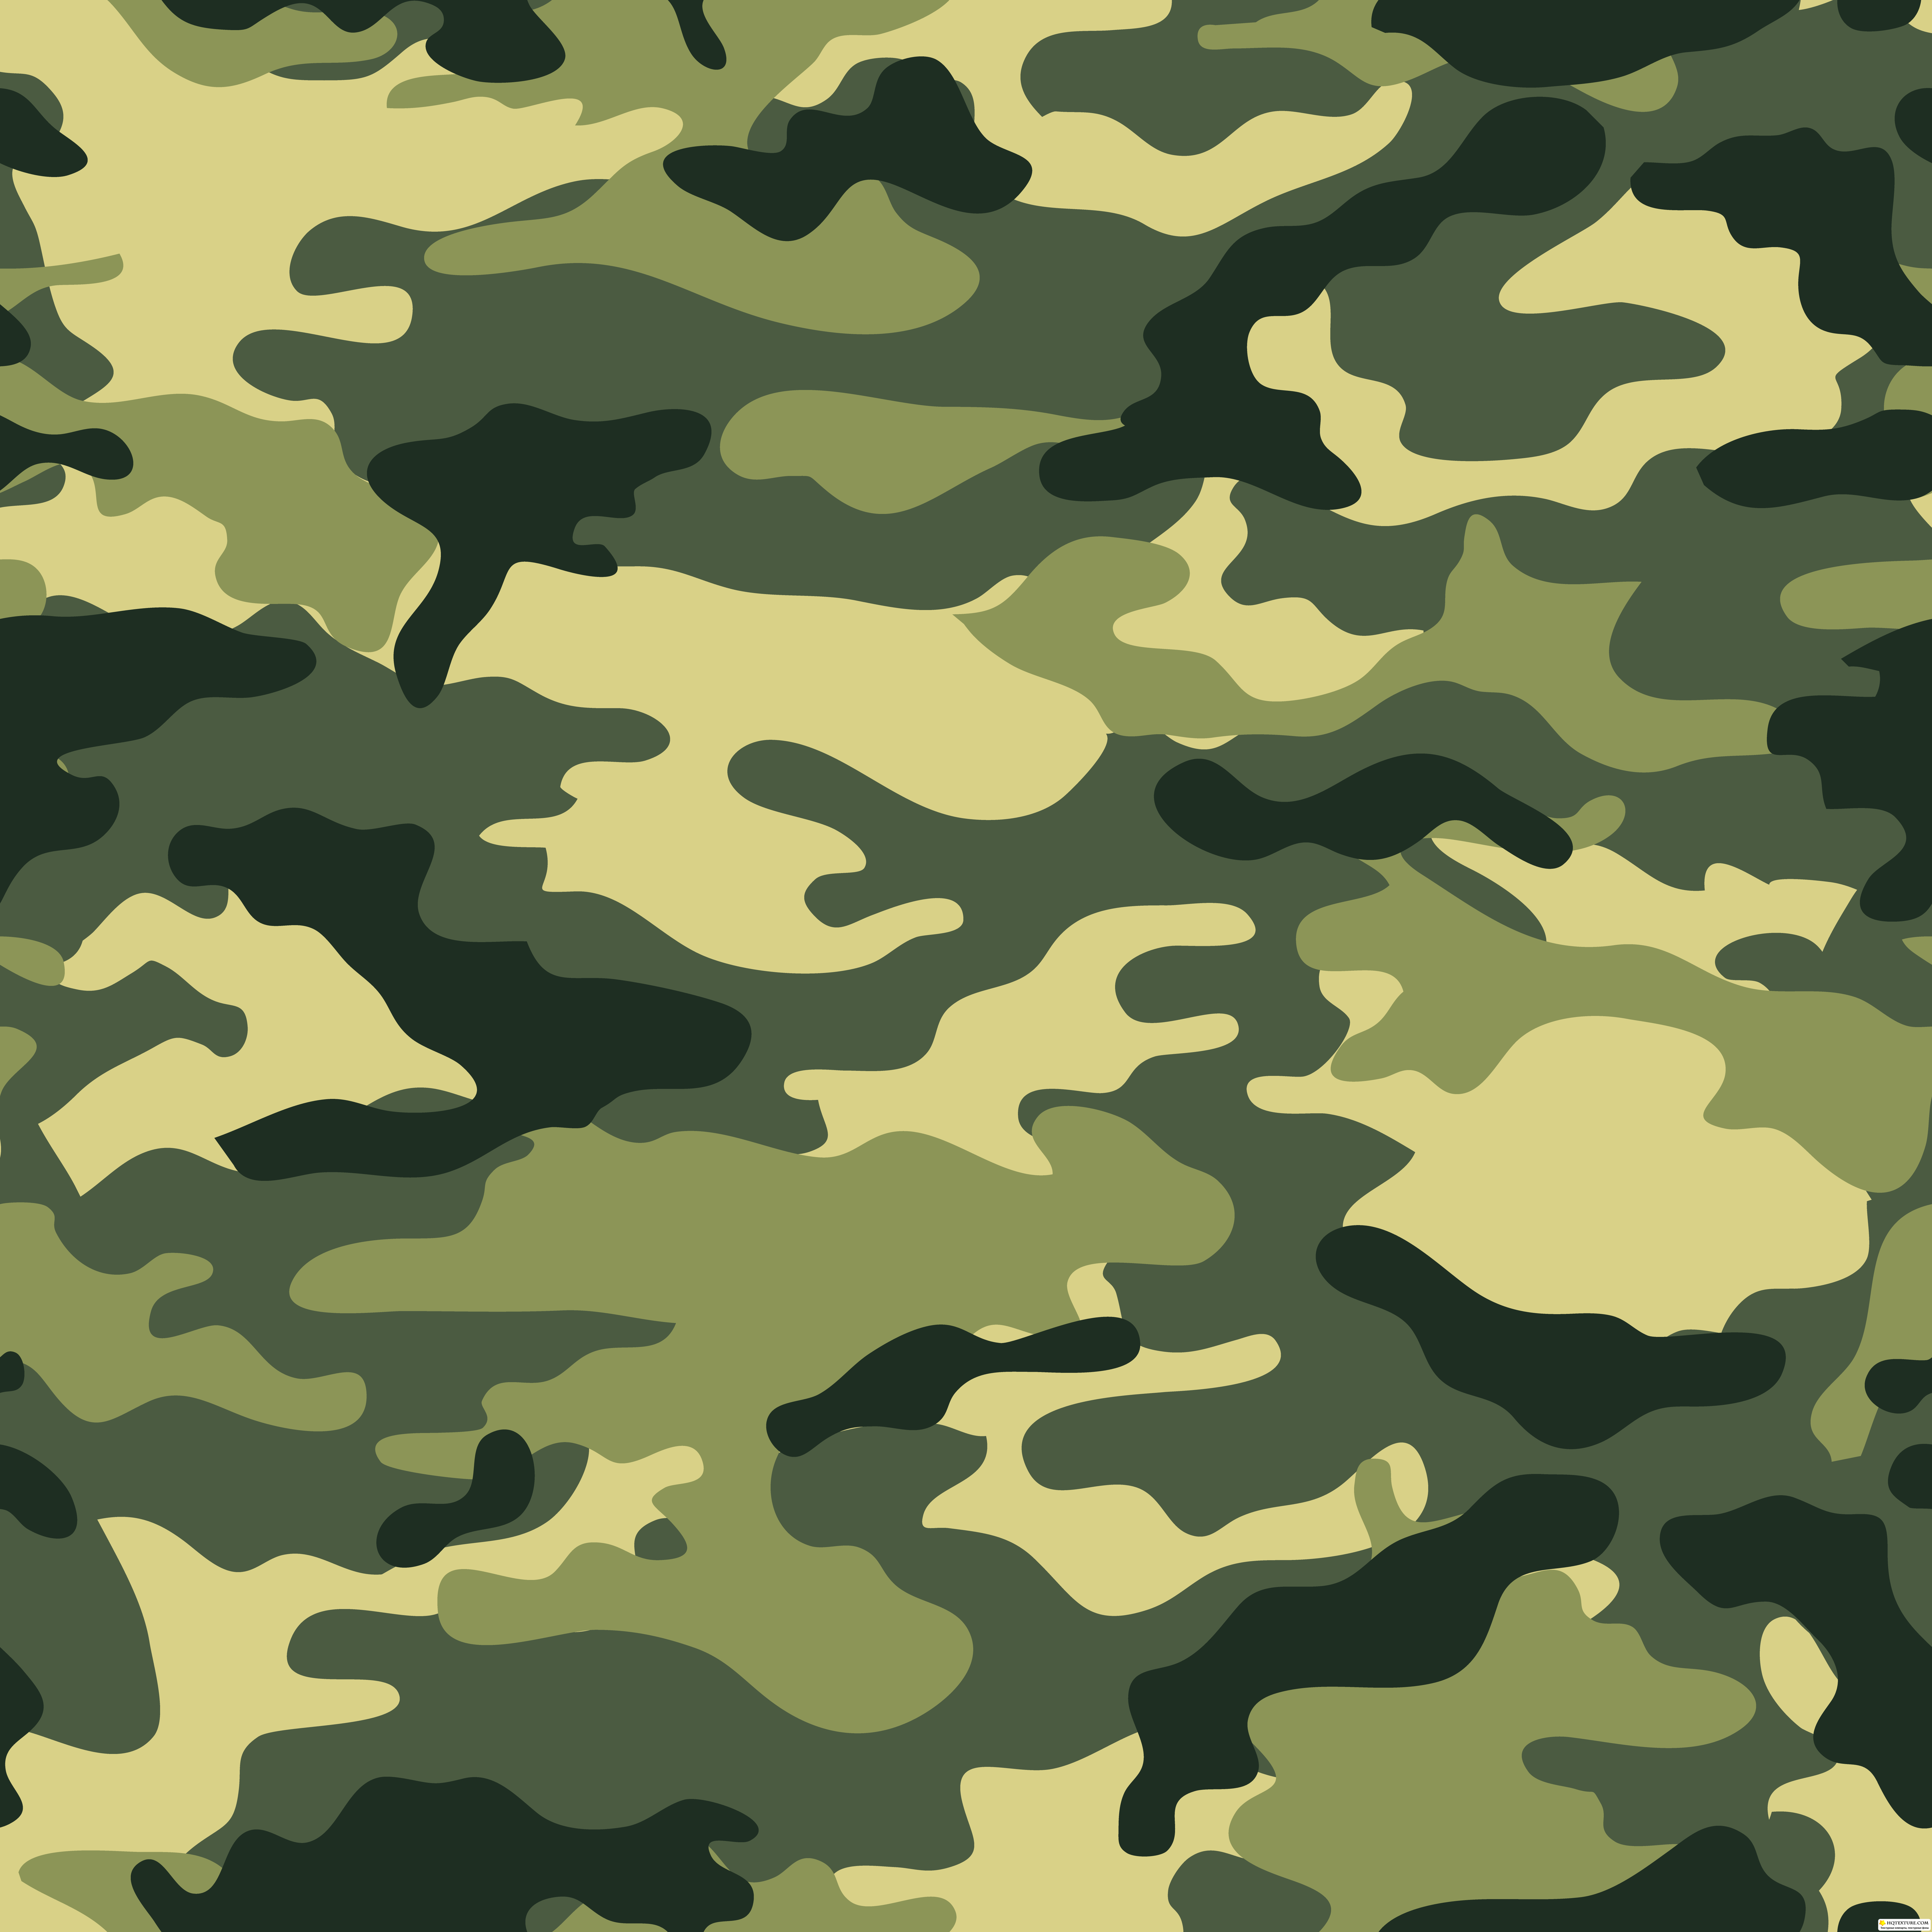 Free Army Background Cliparts, Download Free Clip Art, Free.